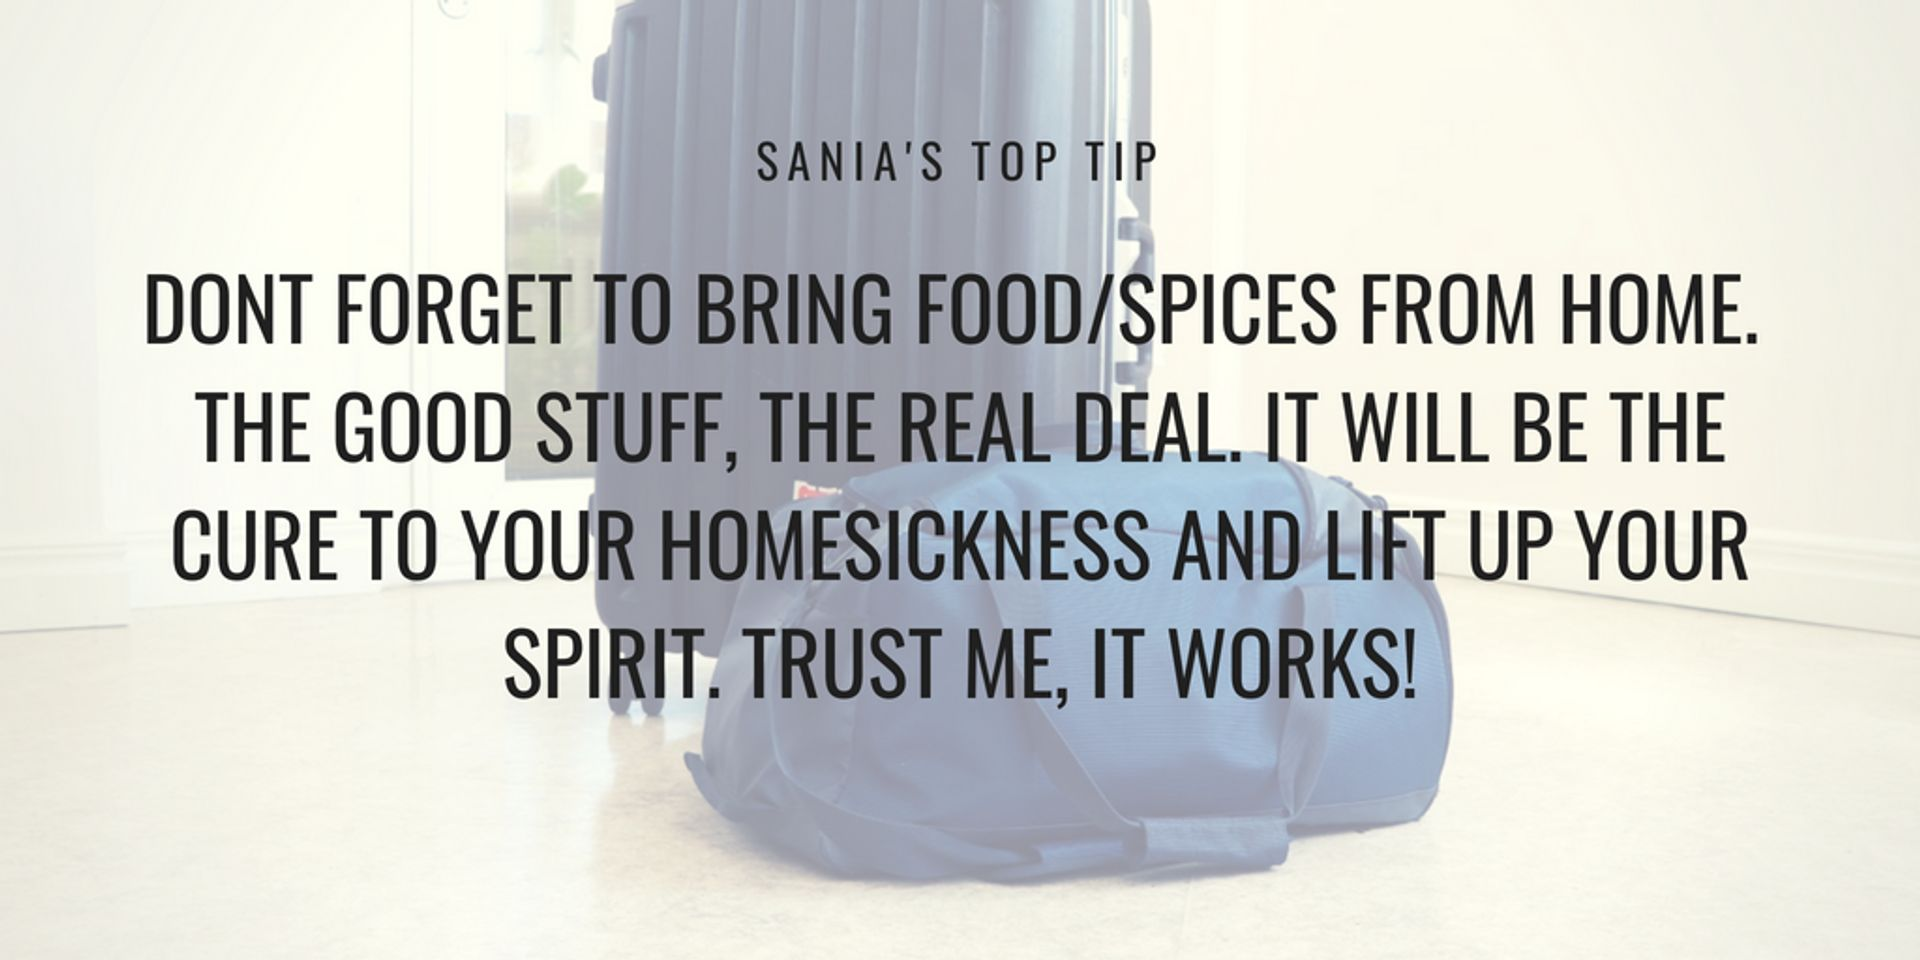 Caption reads 'Don't forget to bring food/spices from home'.